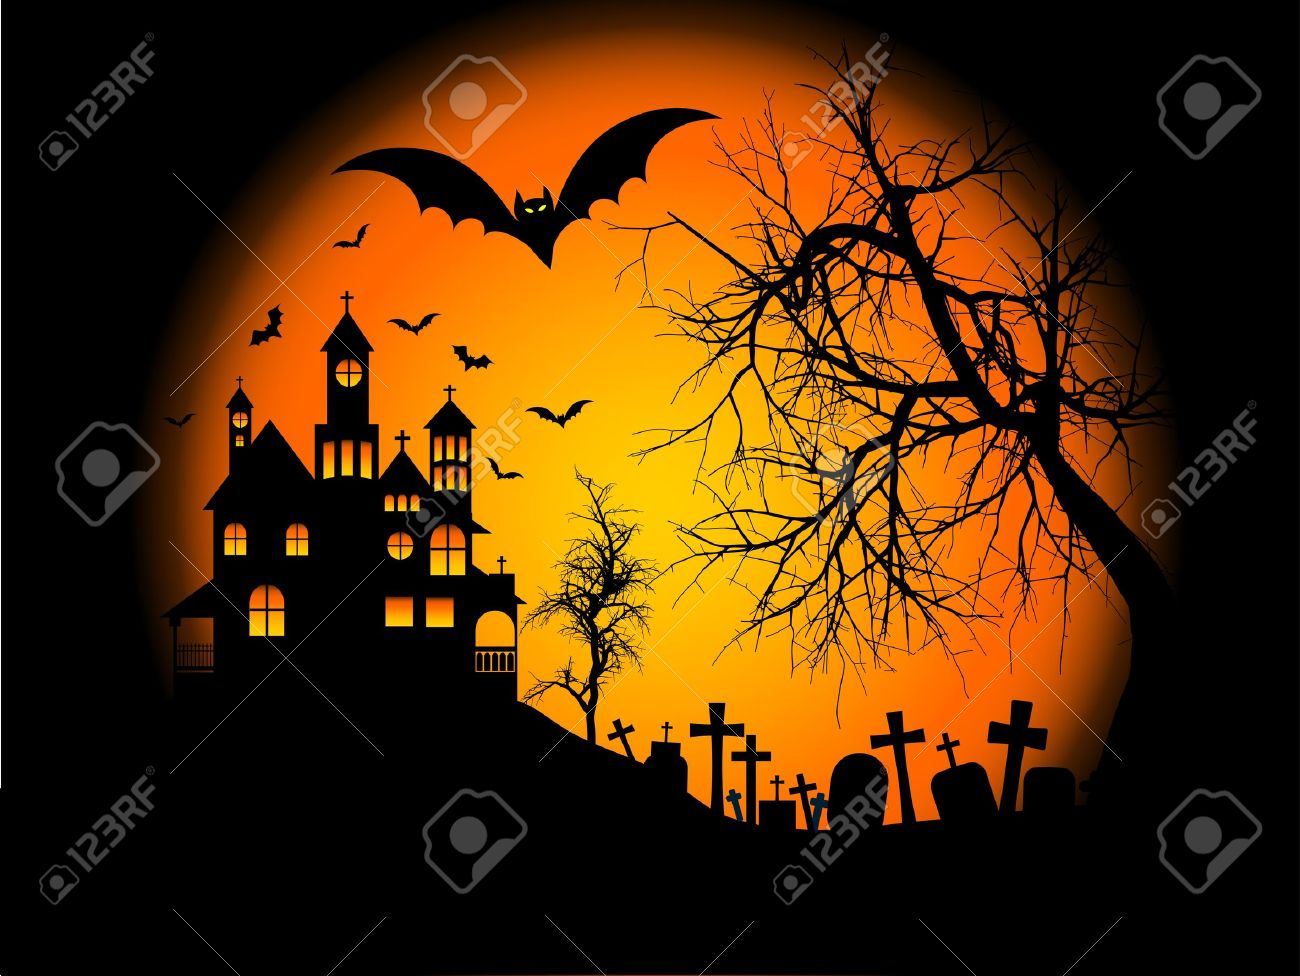 Halloween Spooky House.Spooky Halloween Background With Haunted House On A Hill